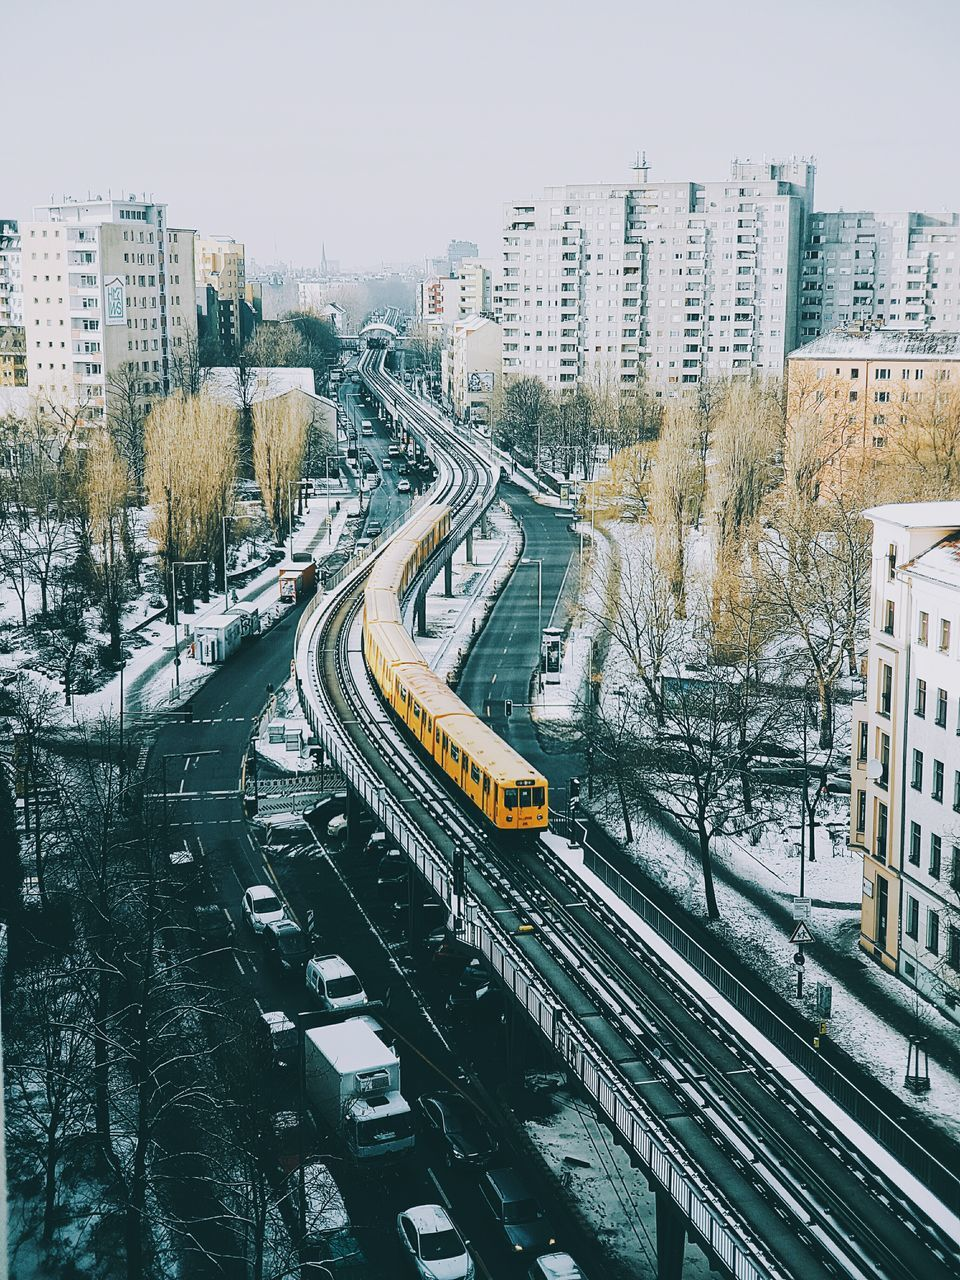 High Angle View Of Train On Bridge In City During Winter